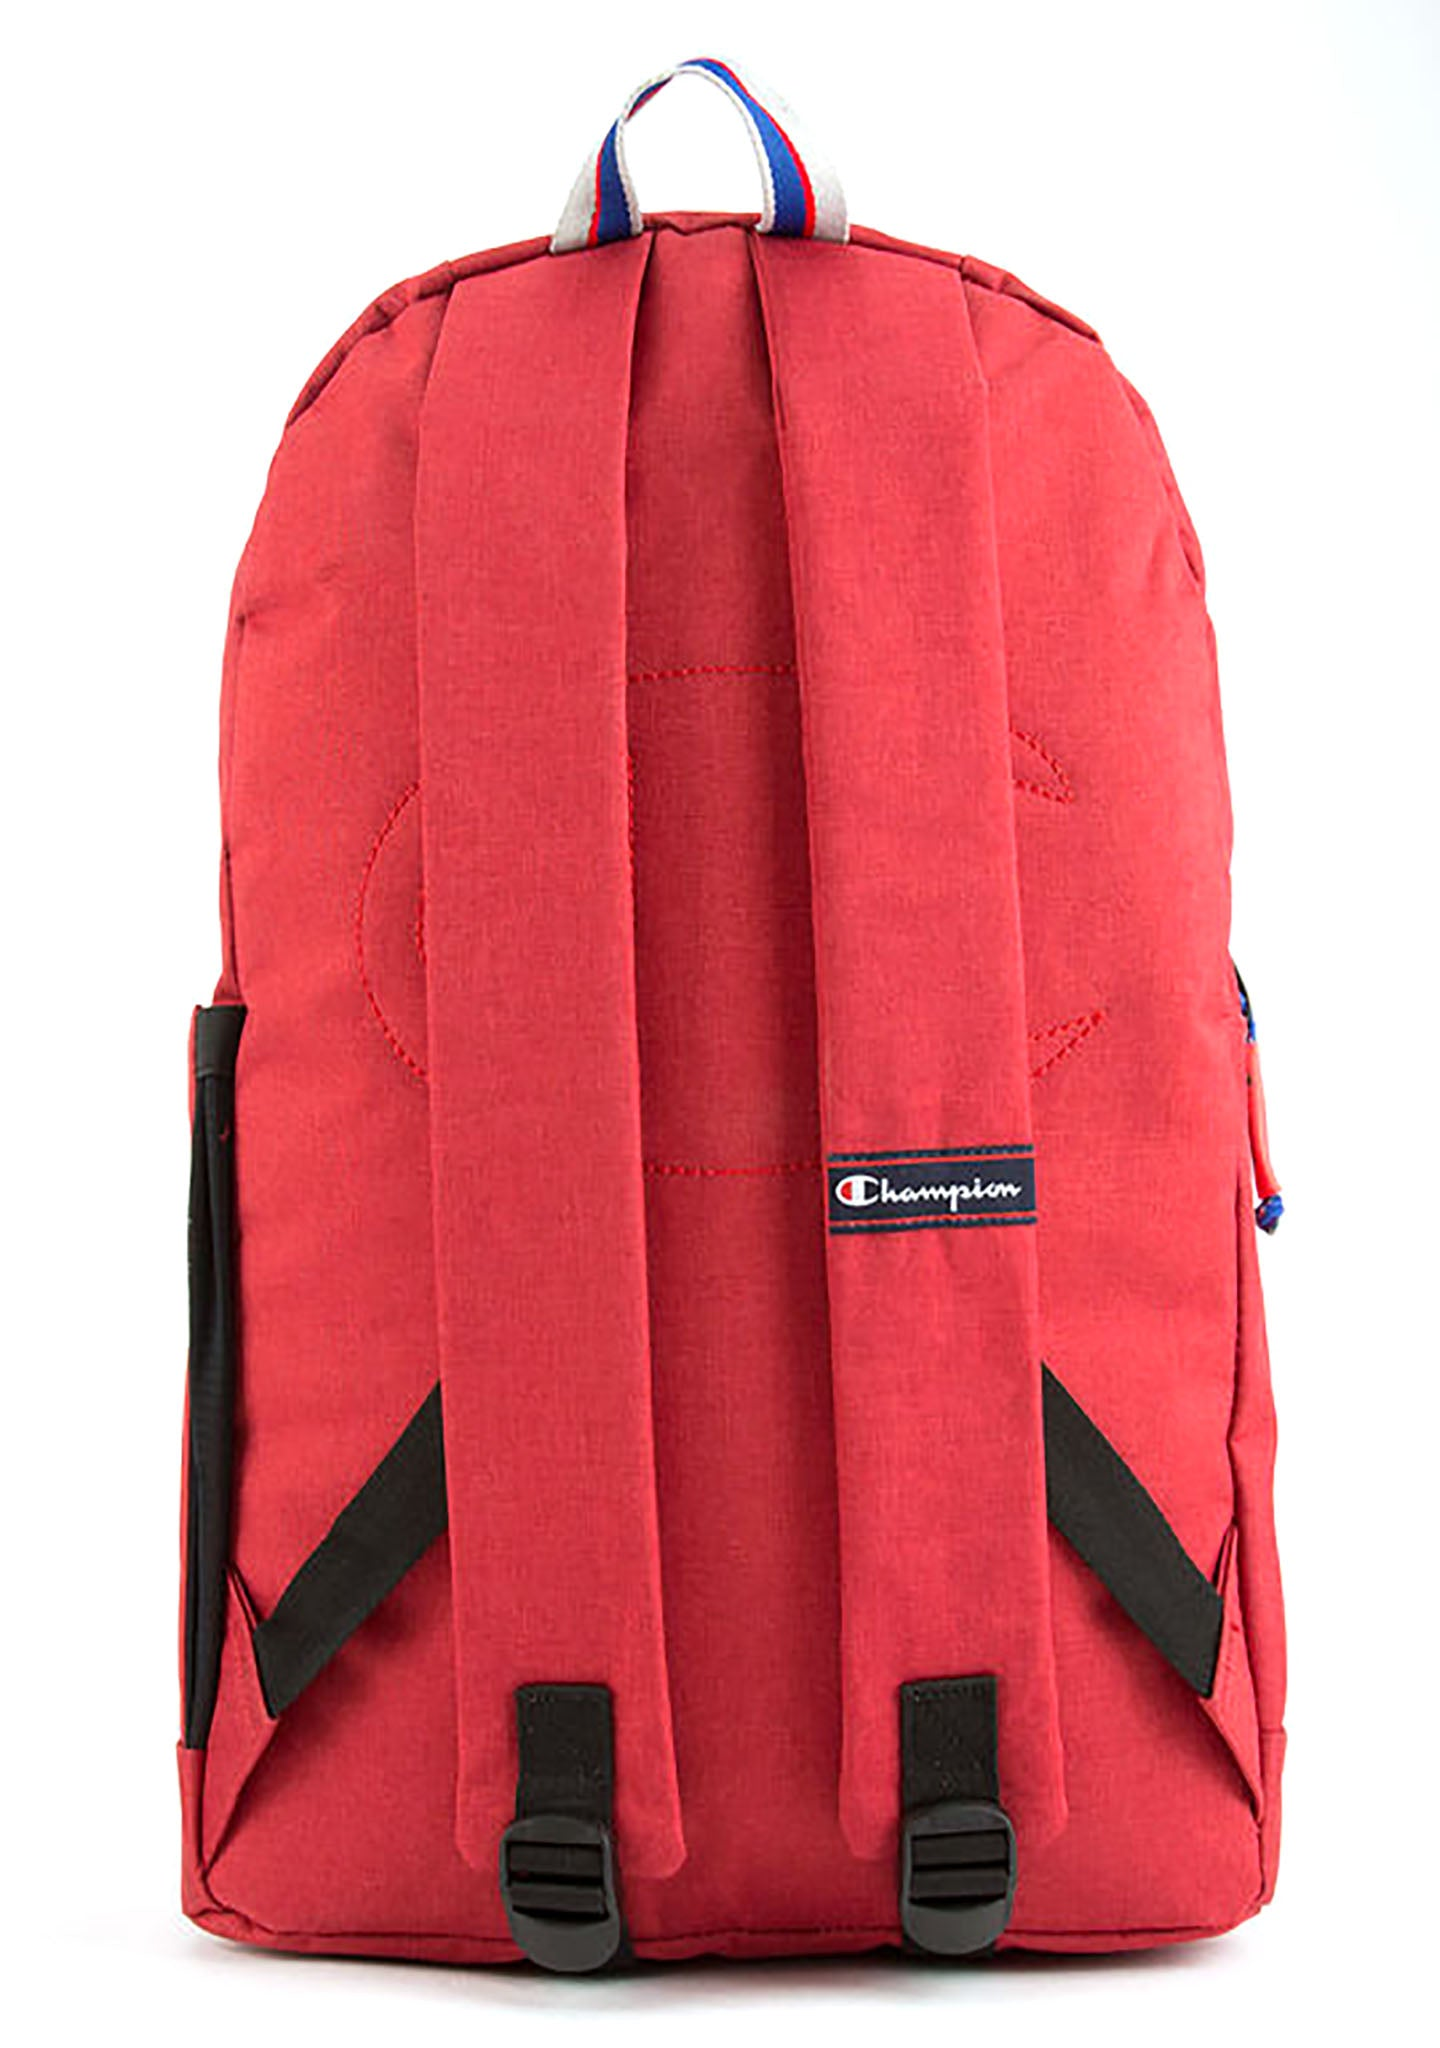 Supercize Backpack in Bright Red